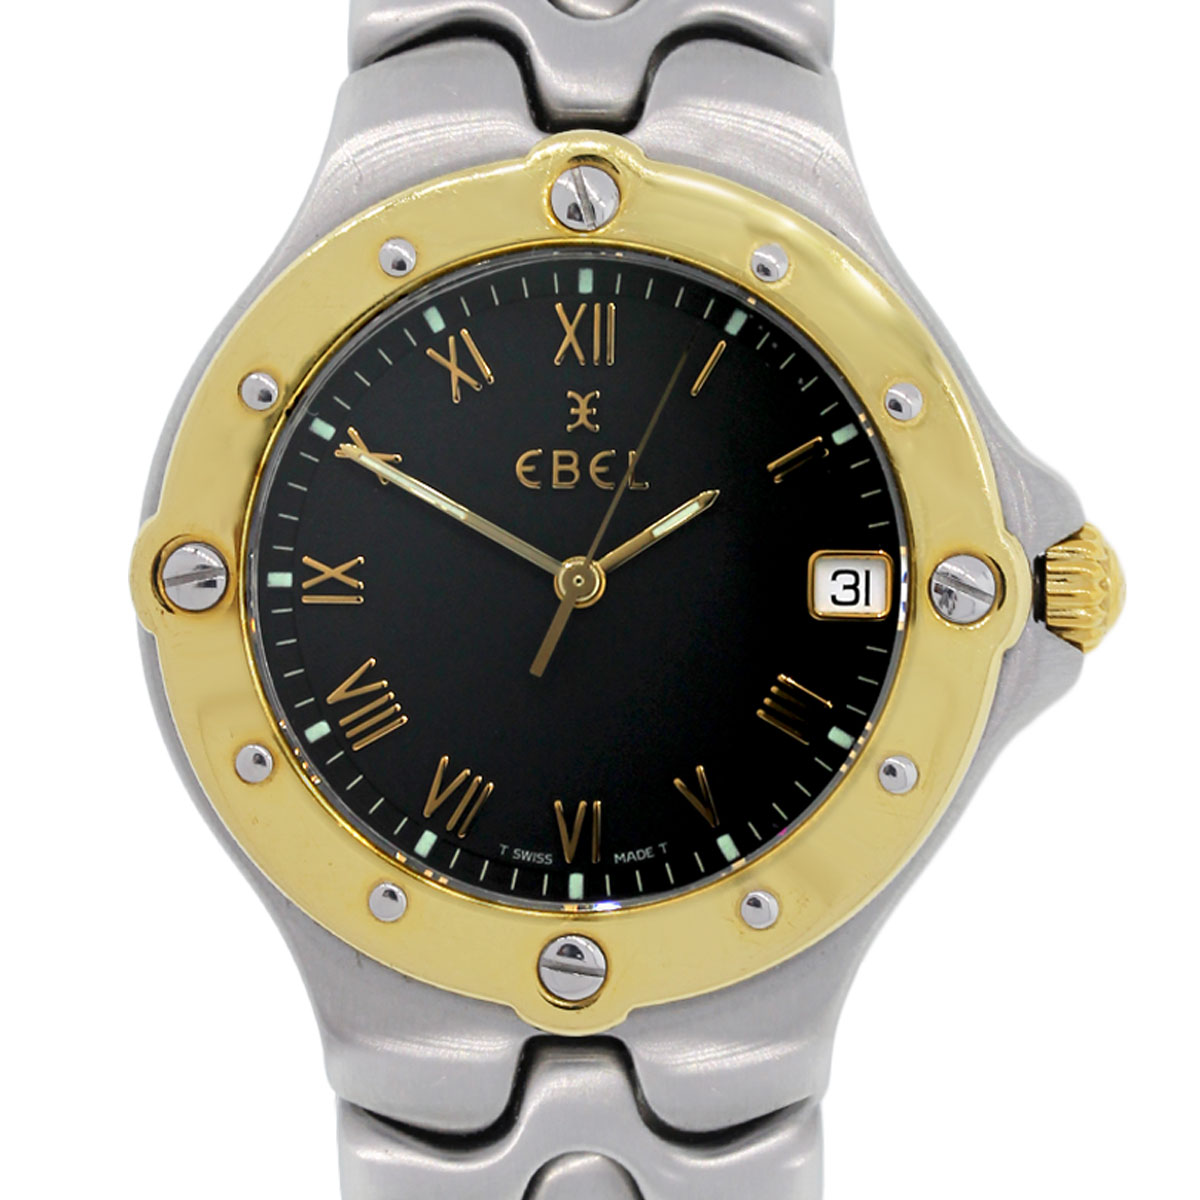 Case Design chanel phone casing Ebel Gents Two Tone Sportwave Black Dial Watch - Raymond Lee Jewelers